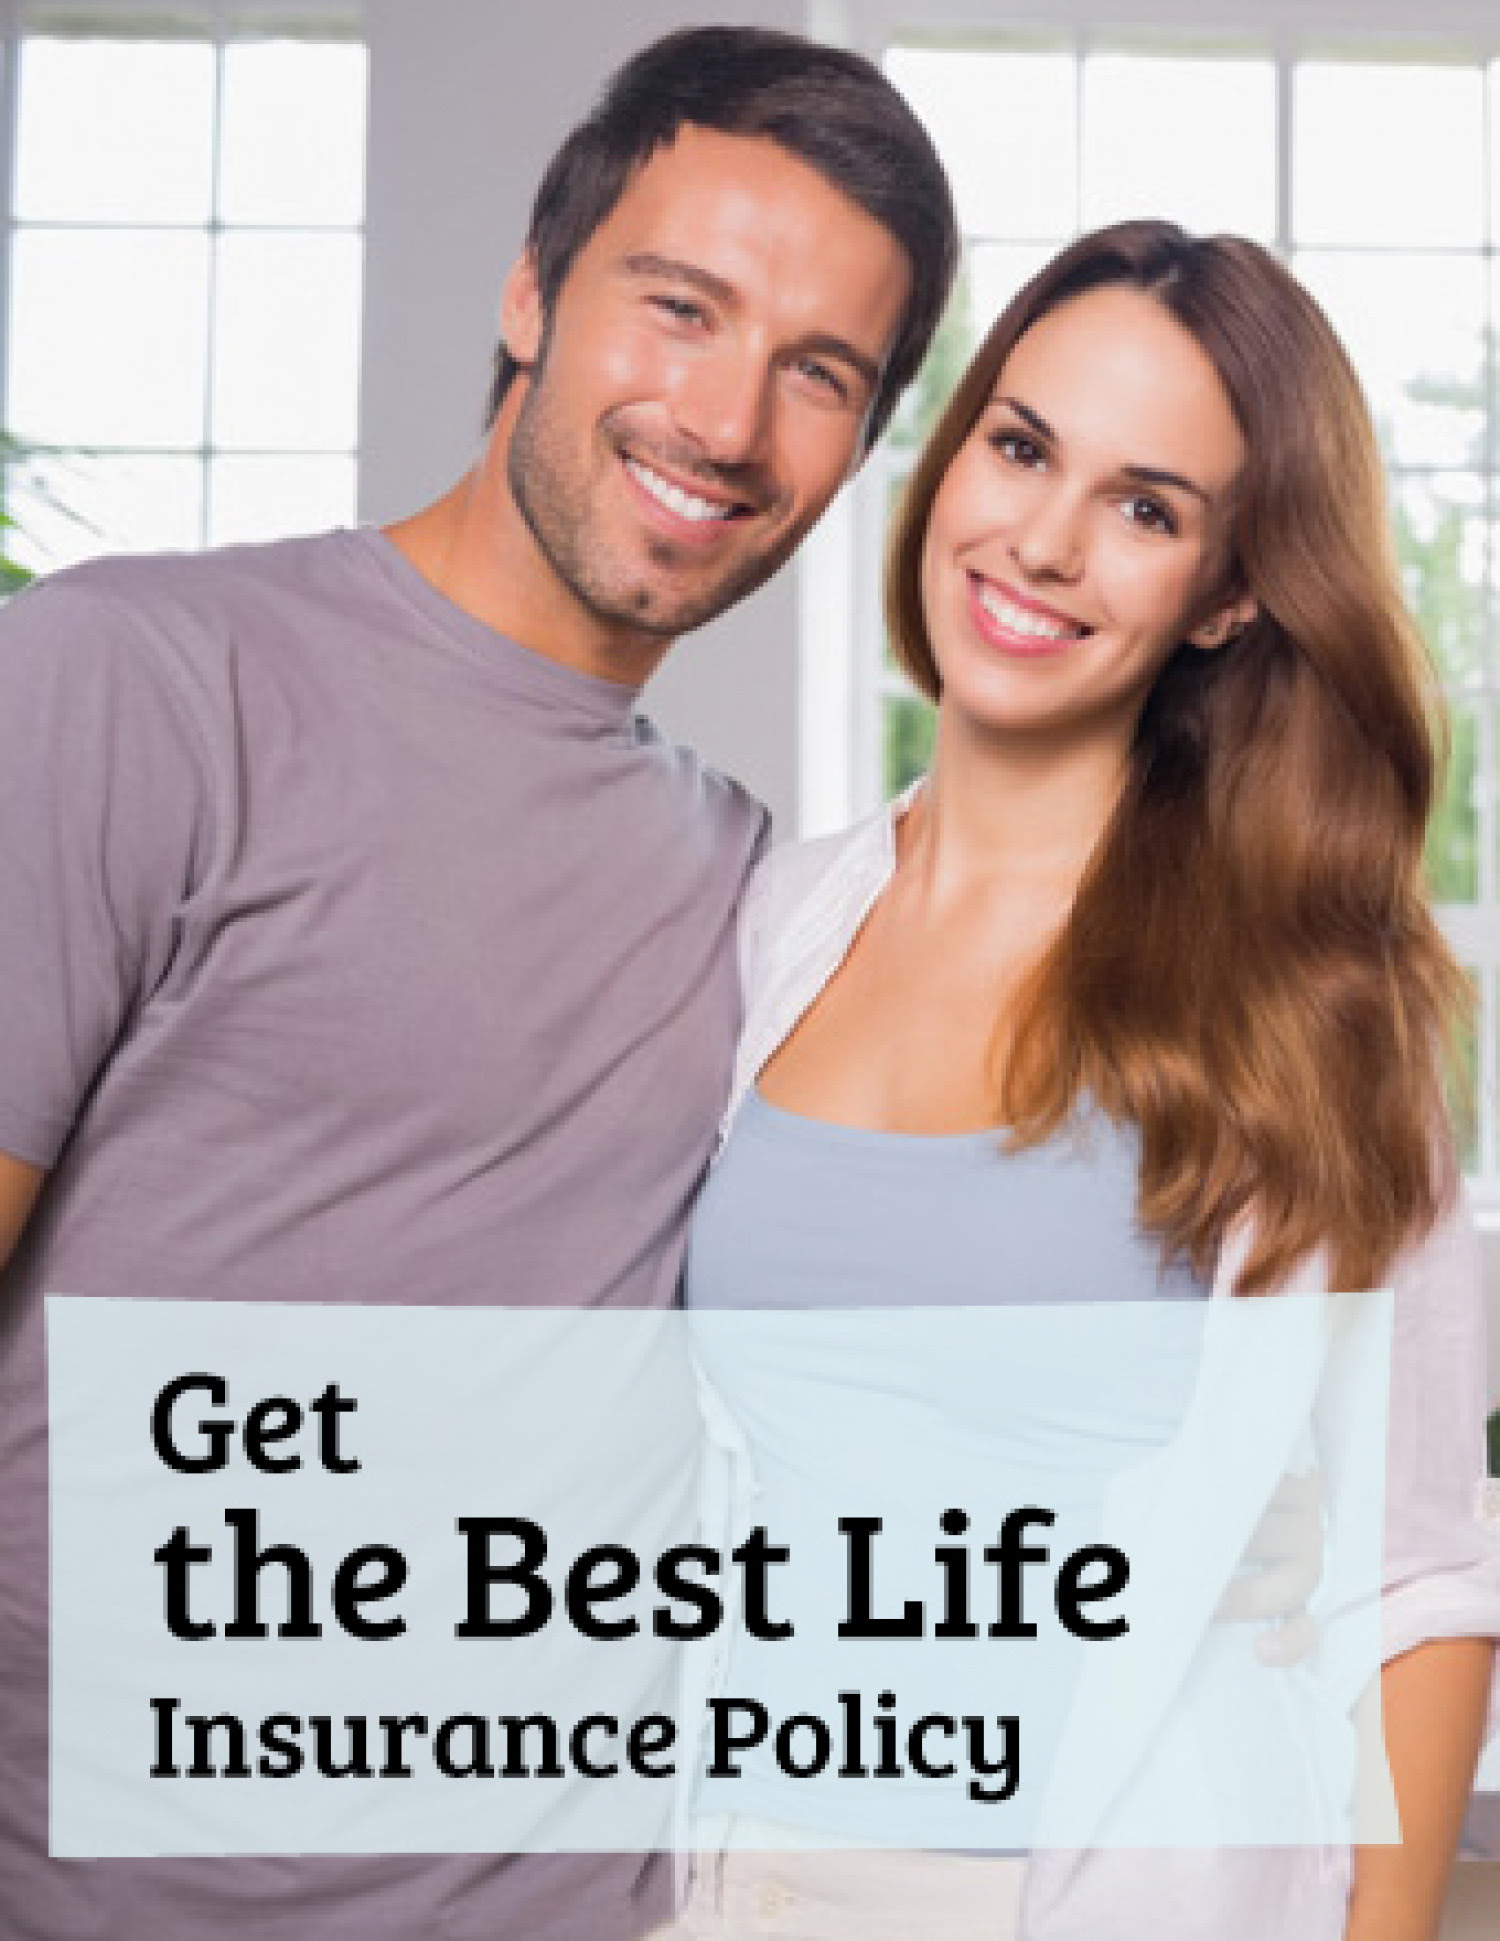 Get the Best Life Insurance Policy | Visual.ly